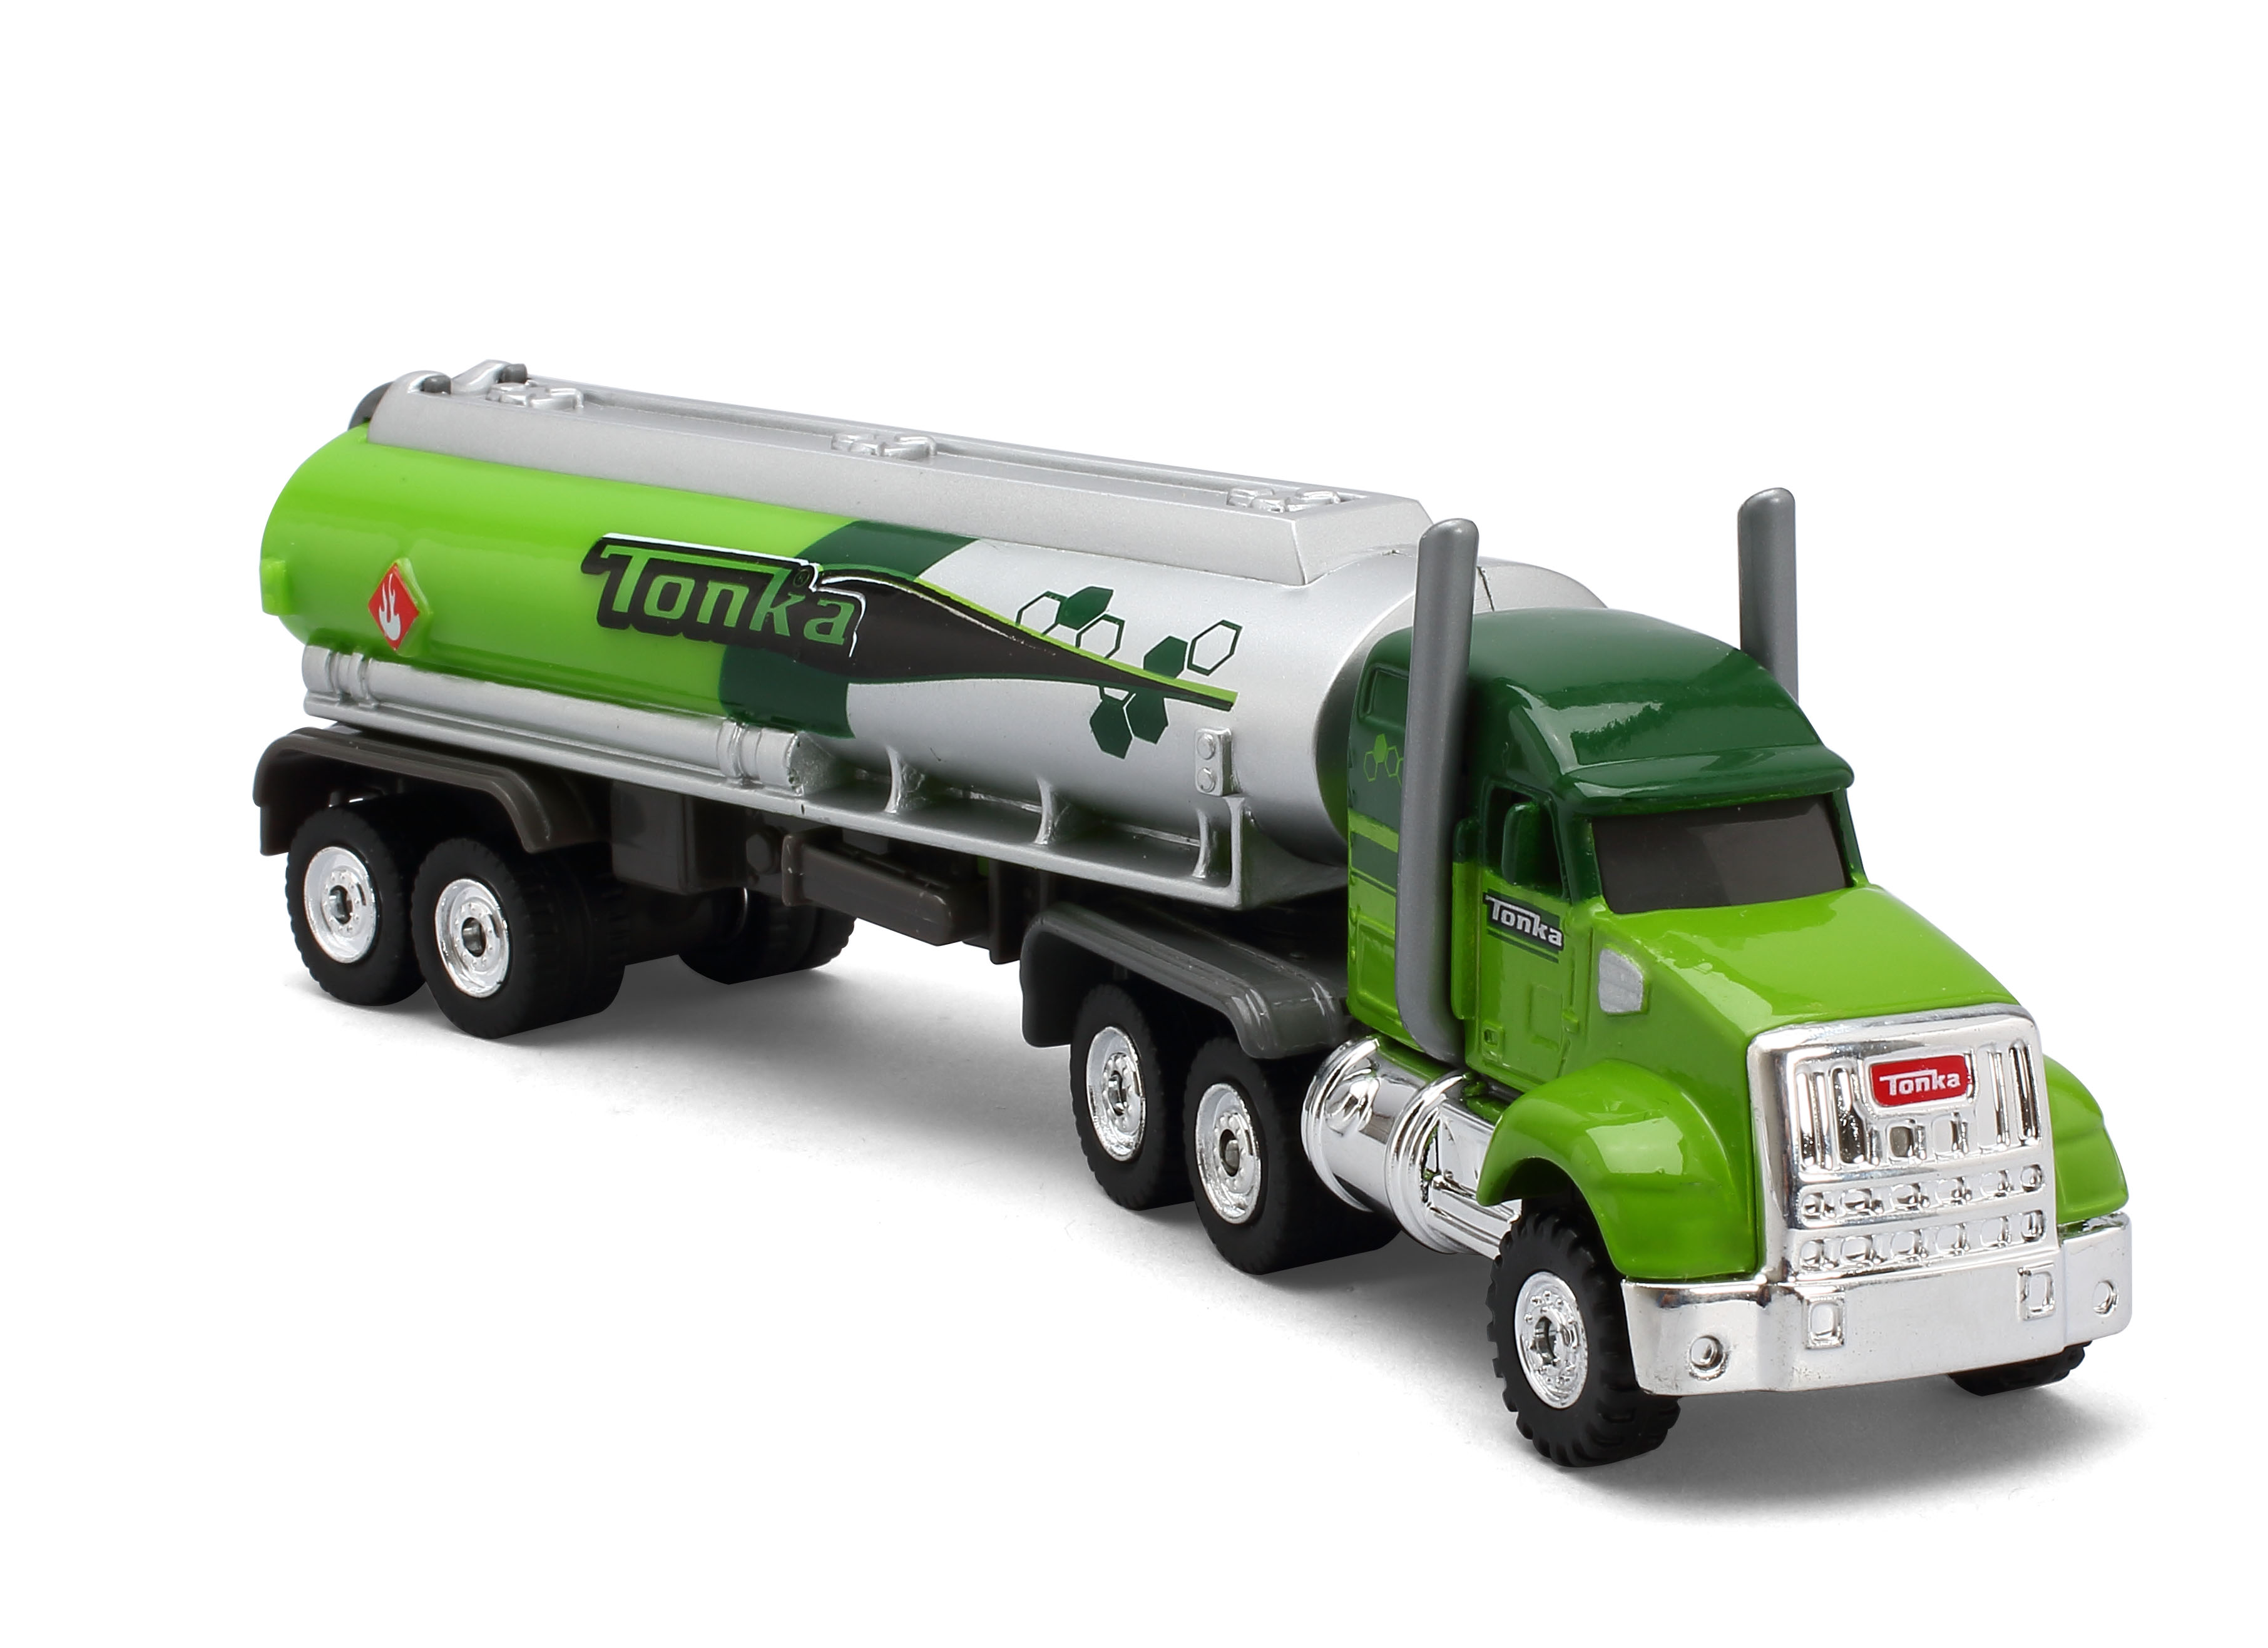 See What Other Tonka Toys Your Little One Can Play With